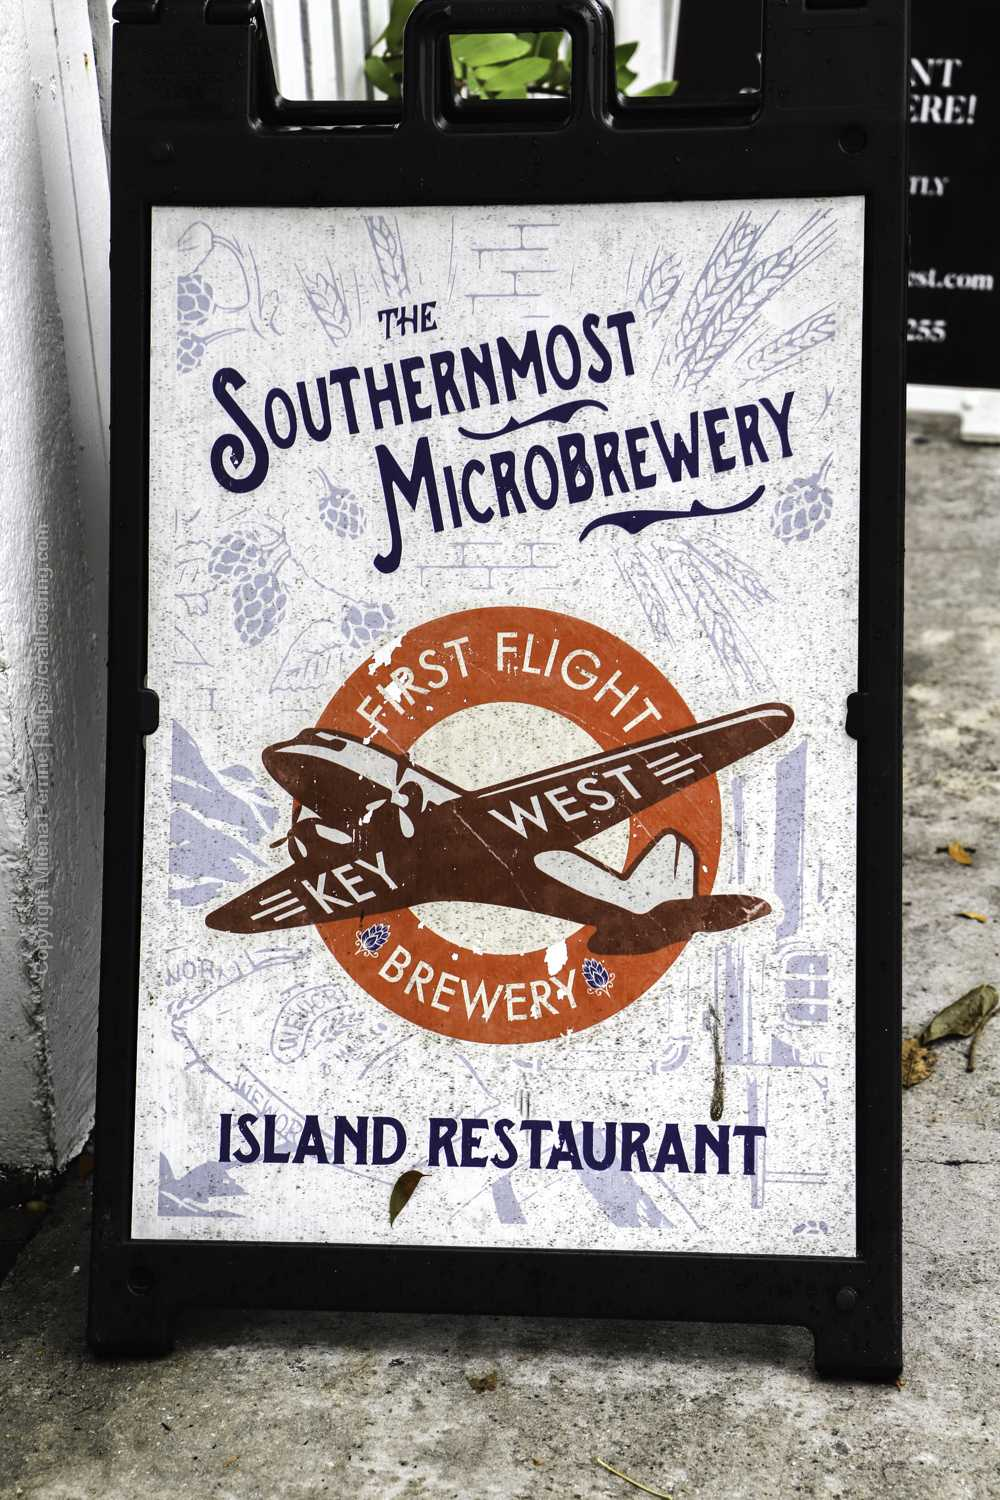 First Flight - the Southernmost brewery in the USA, located in Key West at the corner of Whitehead St. and Caroline St.